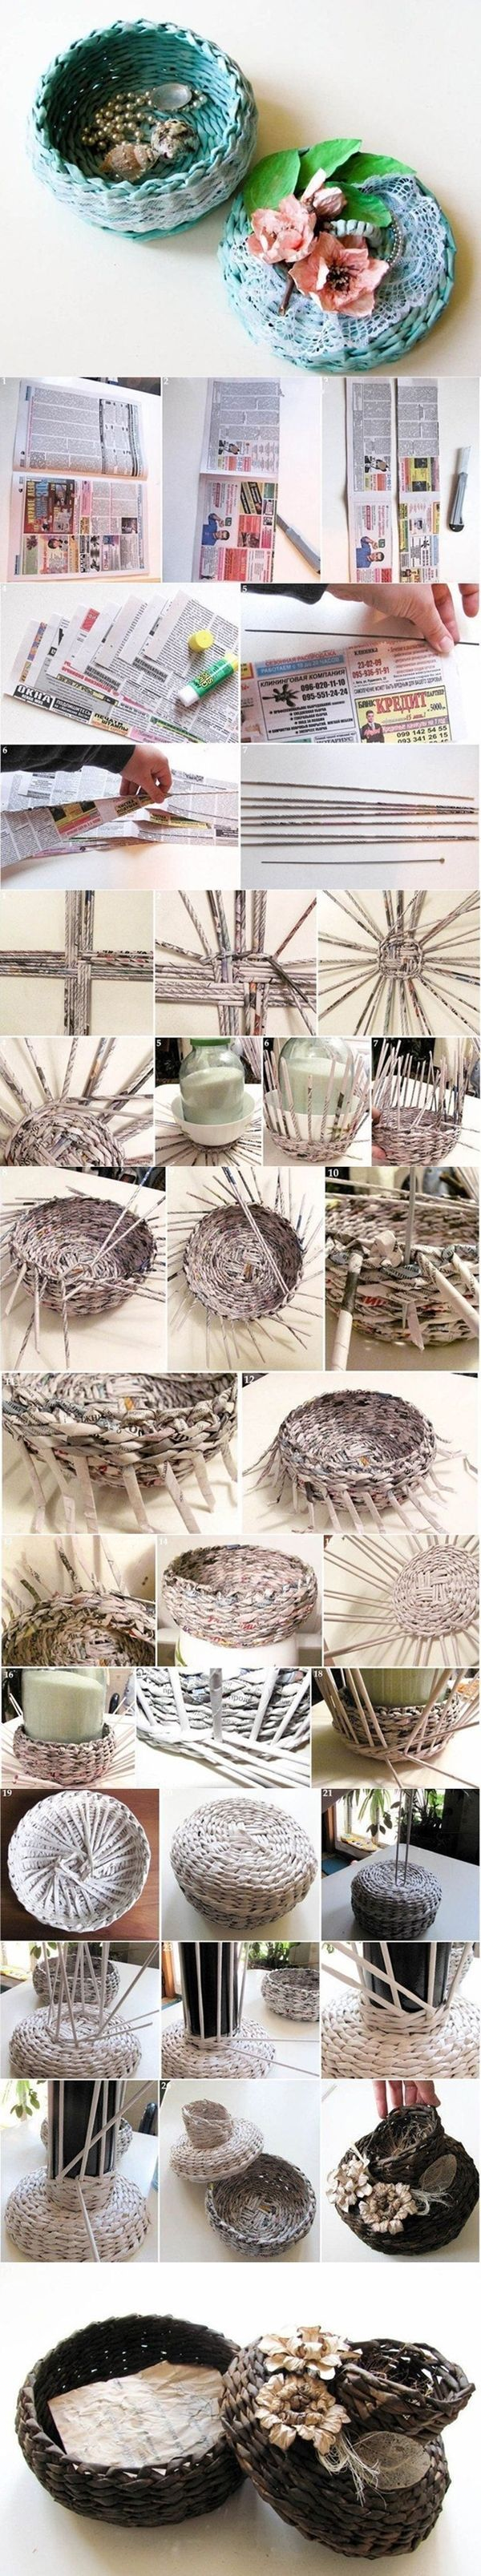 DIY Covered Woven Basket from Newspaper | www.FabArtDIY.com LIKE Us